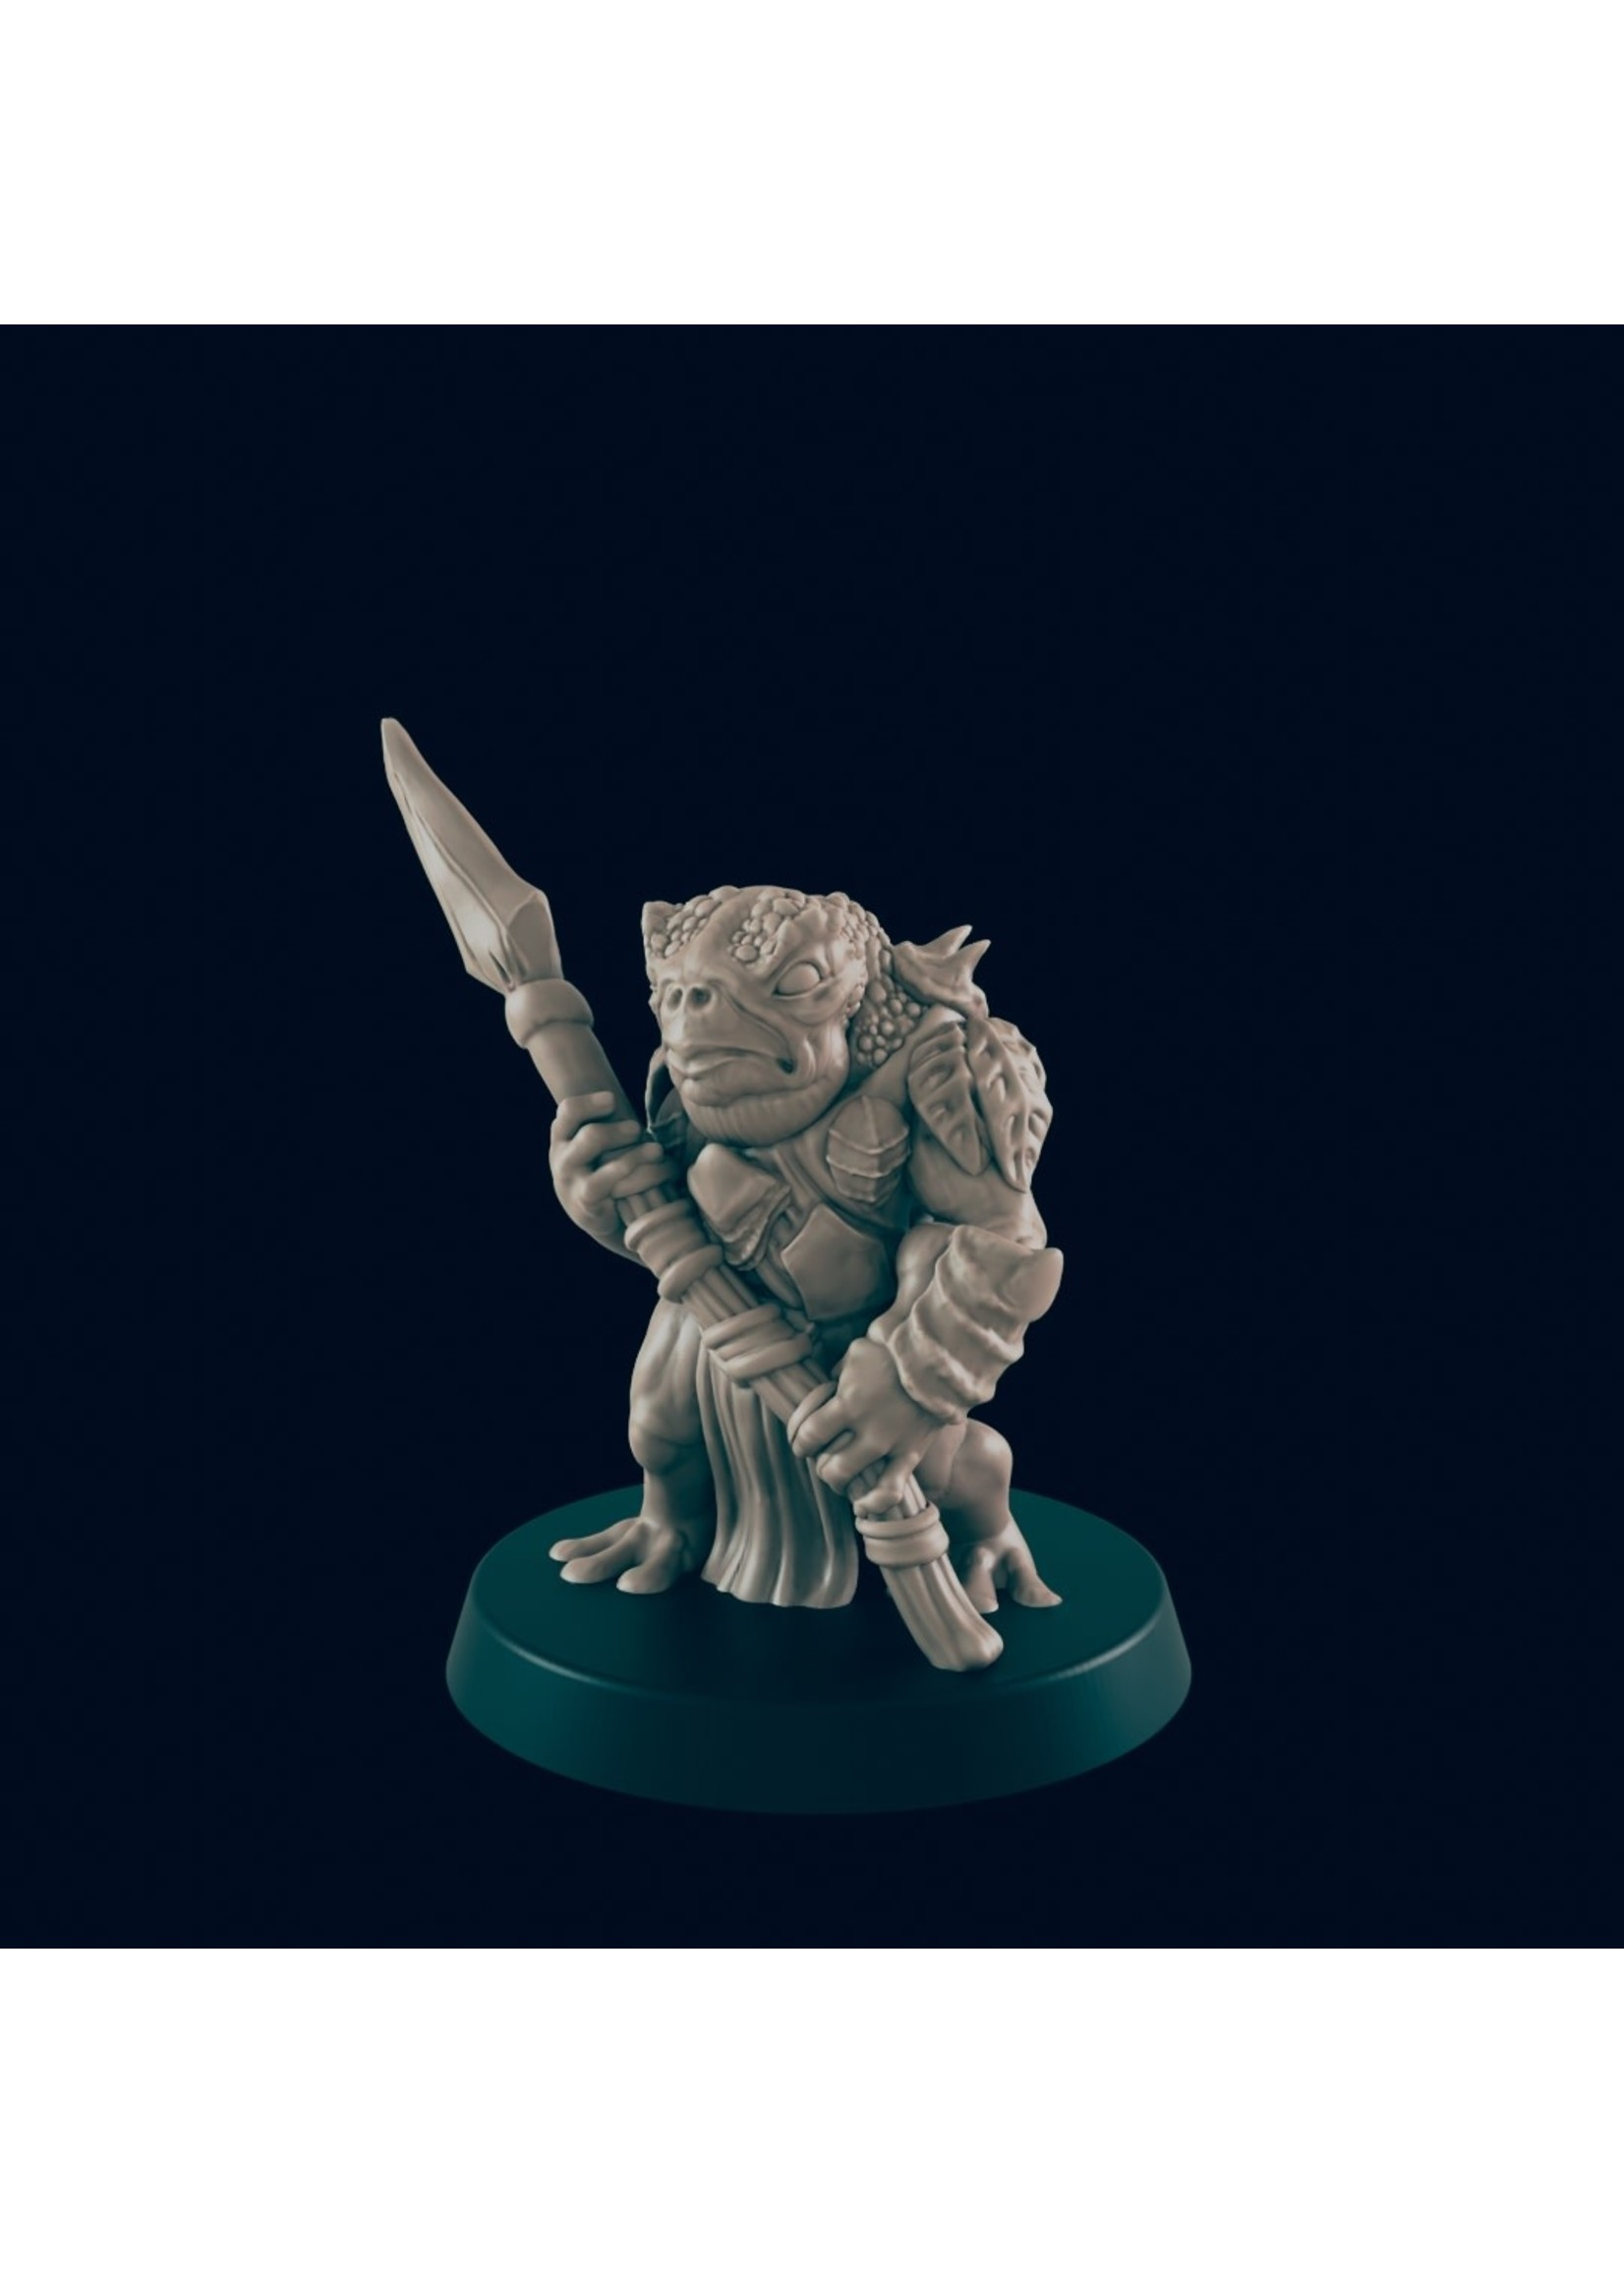 3D Printed Miniature - Bullywug Soldier  - Dungeons & Dragons - Beasts and Baddies